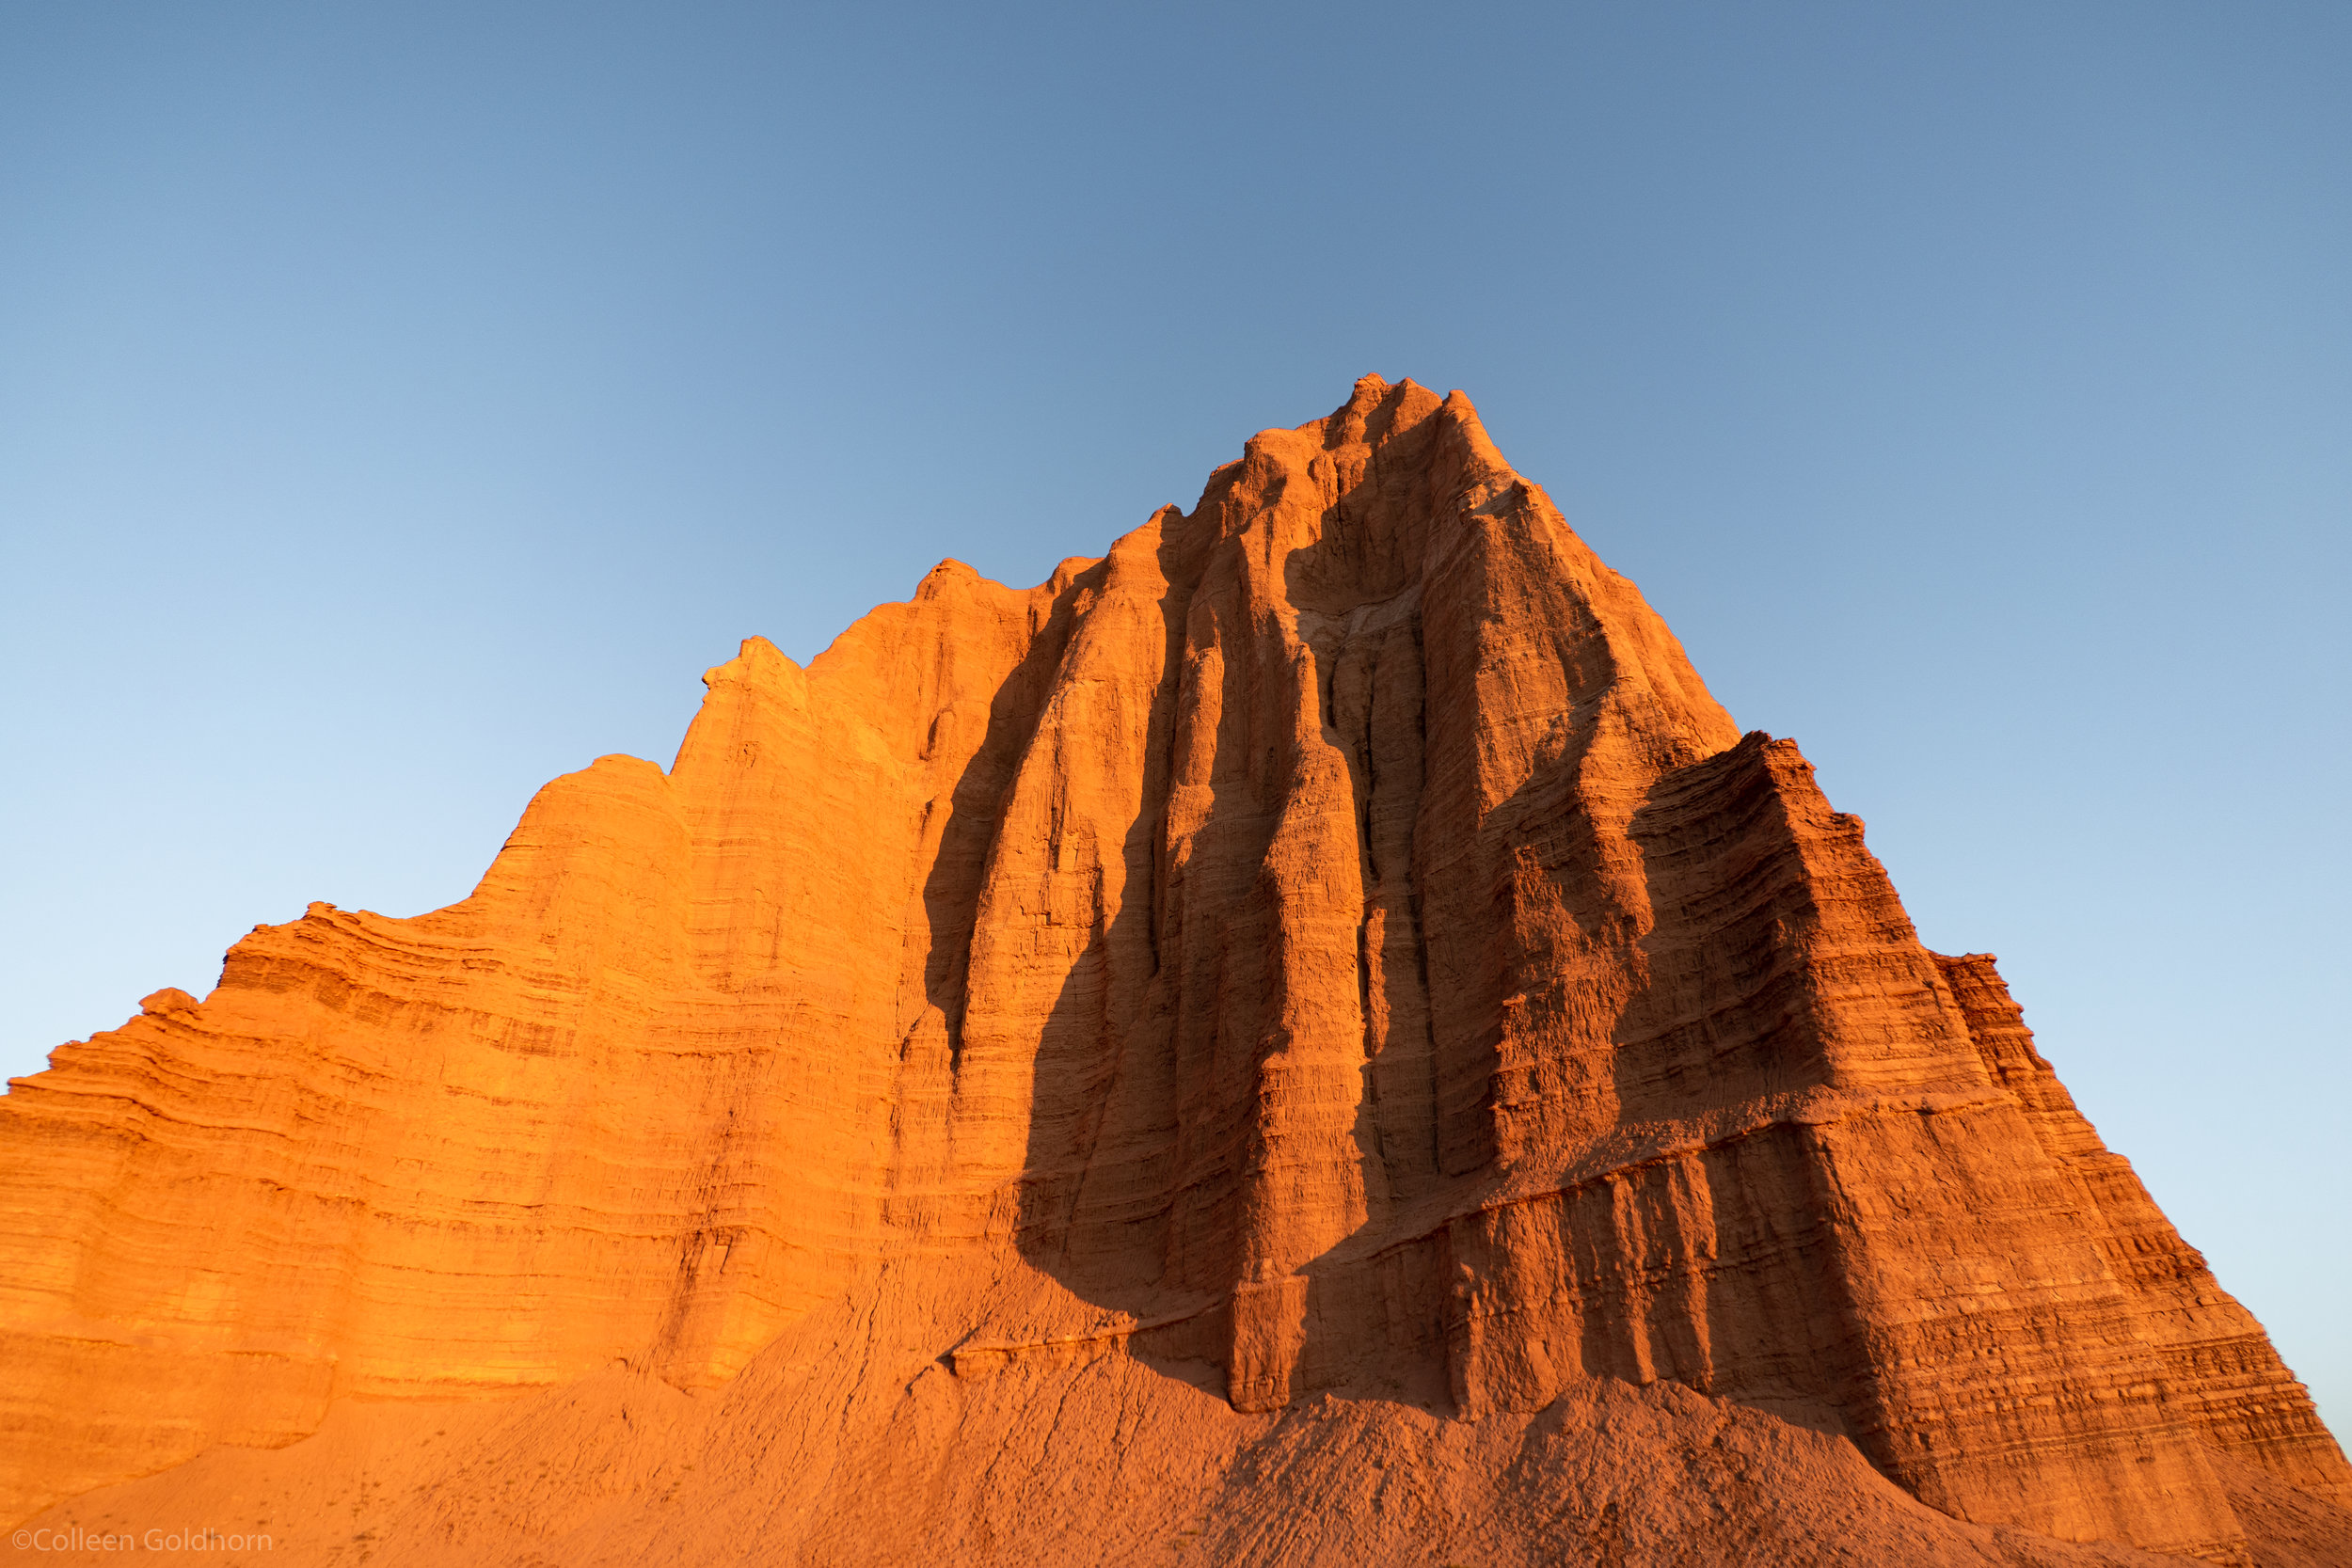 The vibrancy of the rock reflecting the morning sun was almost unreal…